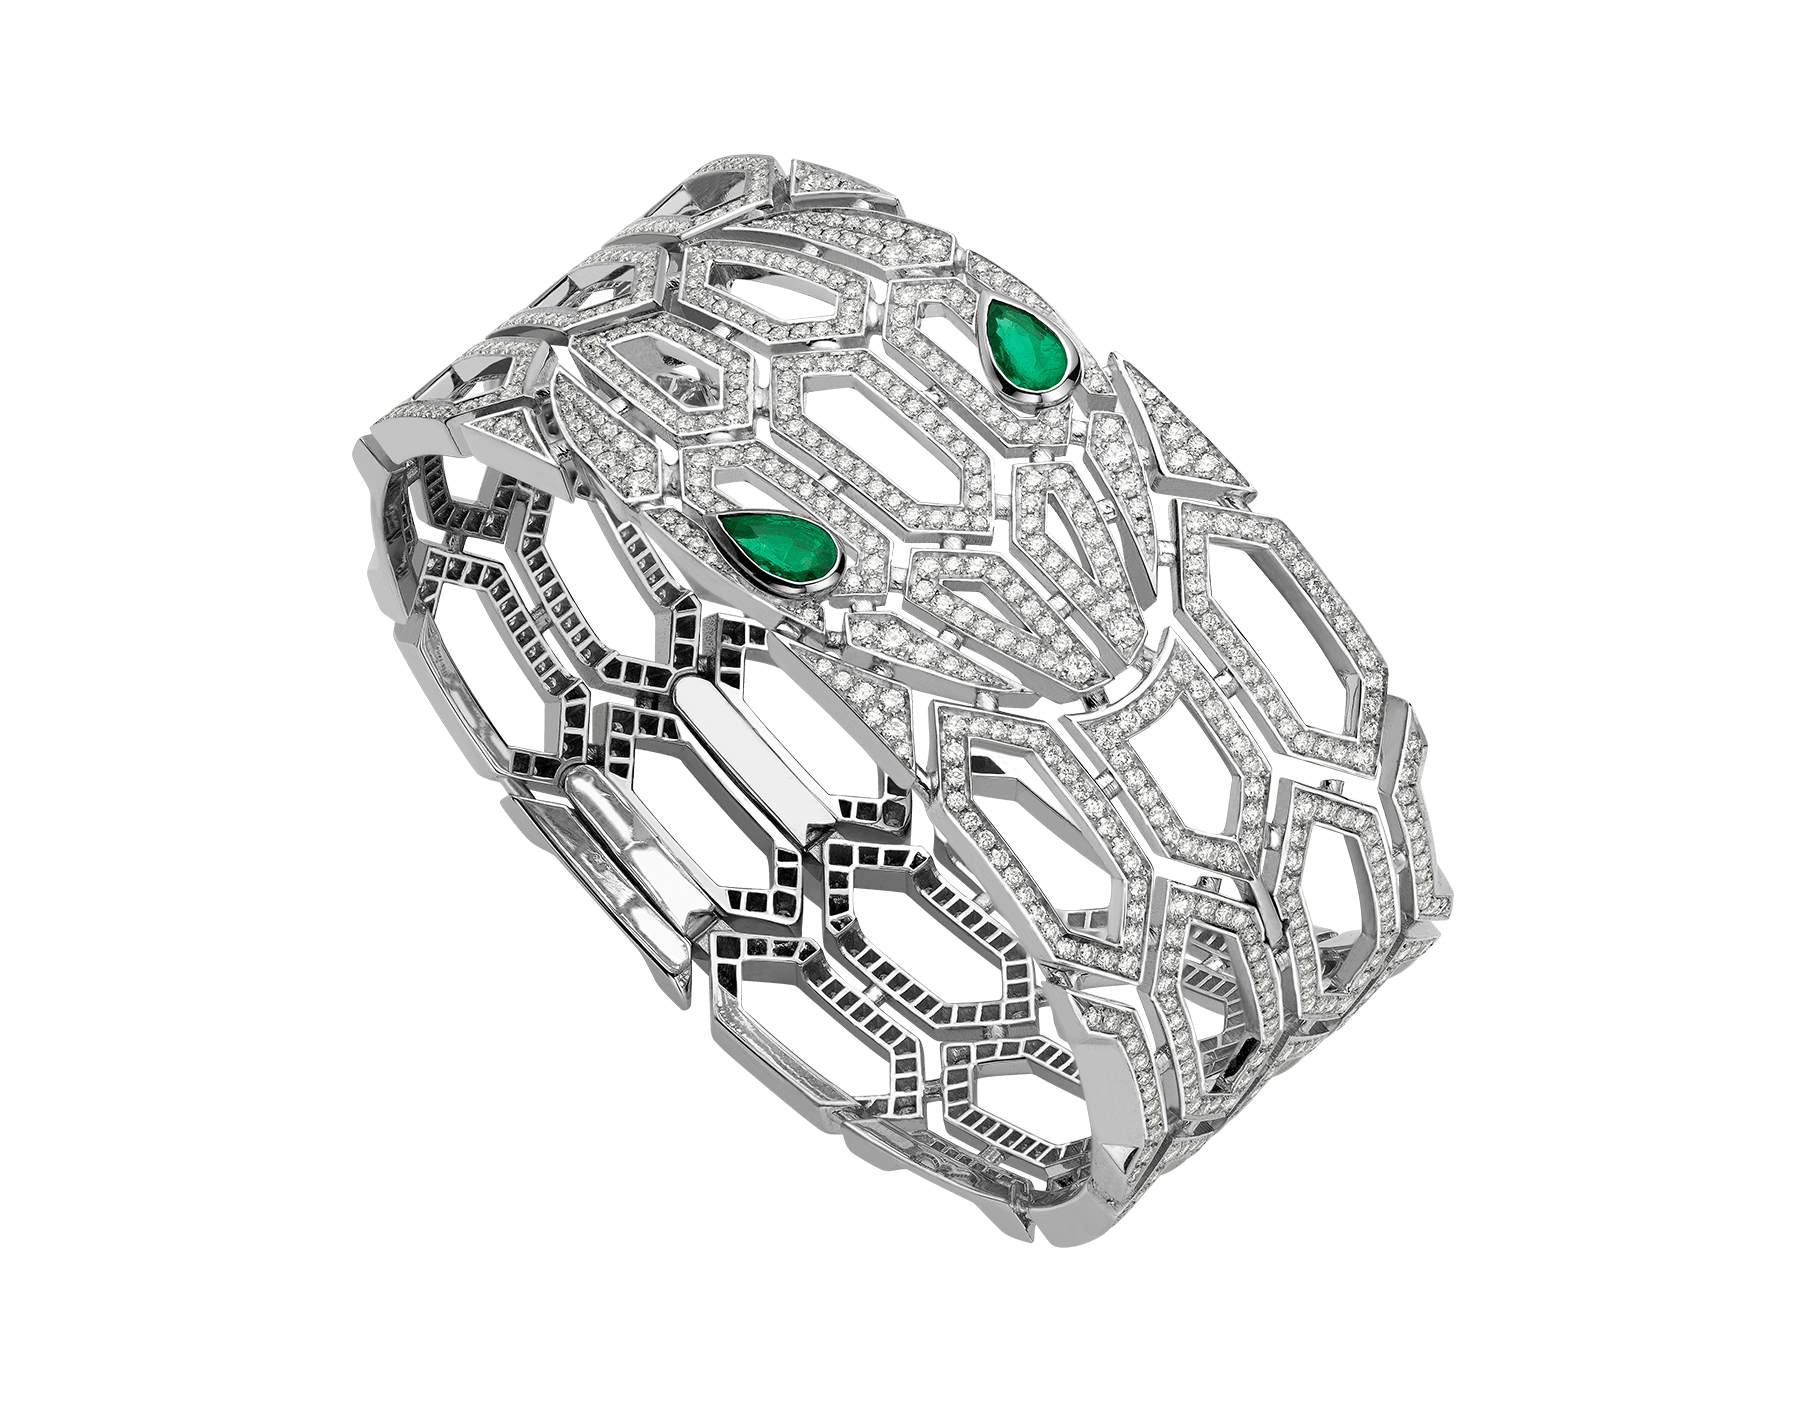 Serpenti bangle bracelet in 18 kt white gold, set with emerald eyes and full pavé diamonds. BR857667 image 1